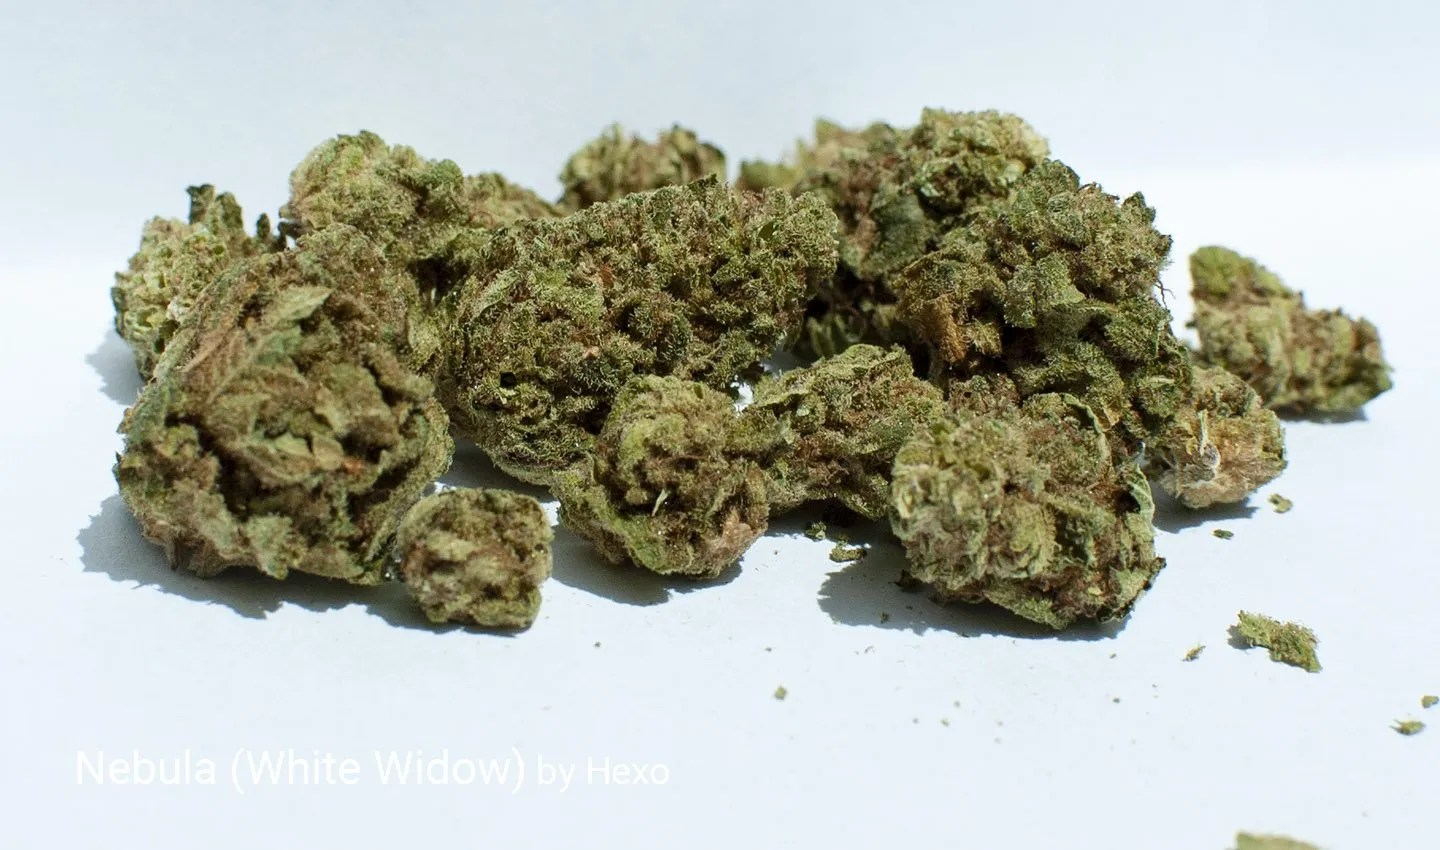 15.53% THC Nebula aka White Widow by Hexo